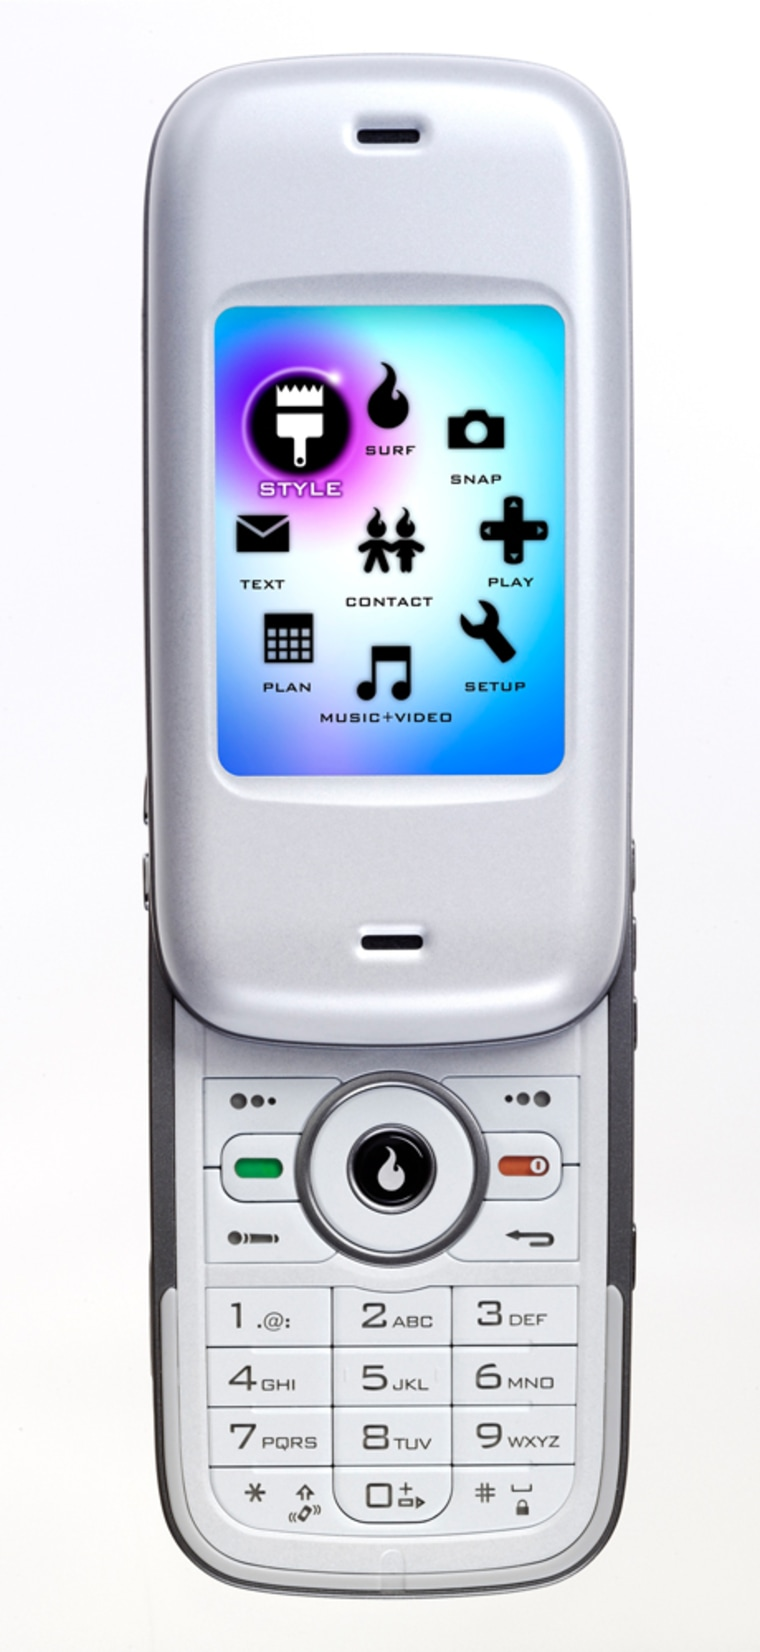 The Kickflip phone, one of the two MySpace phones, is shown in this undated handout image from Helio.